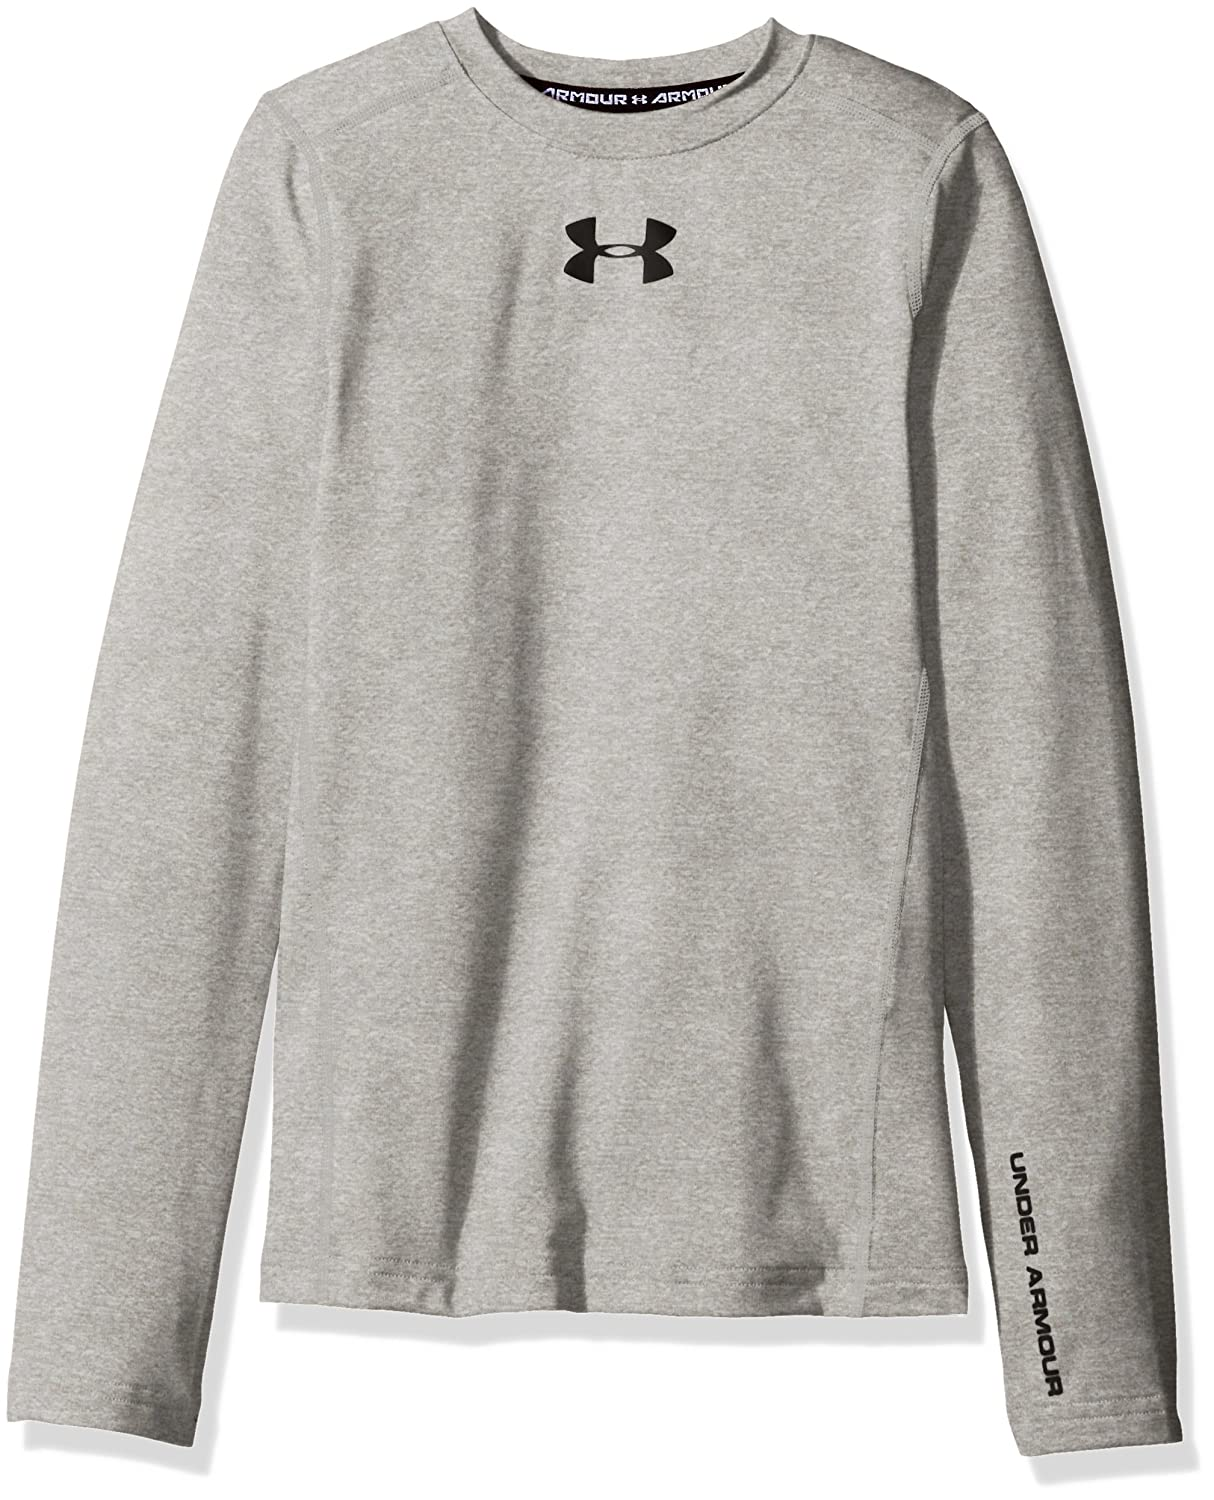 Under Armour Boys' ColdGear Armour Crew Under Armour Apparel 1288344-P